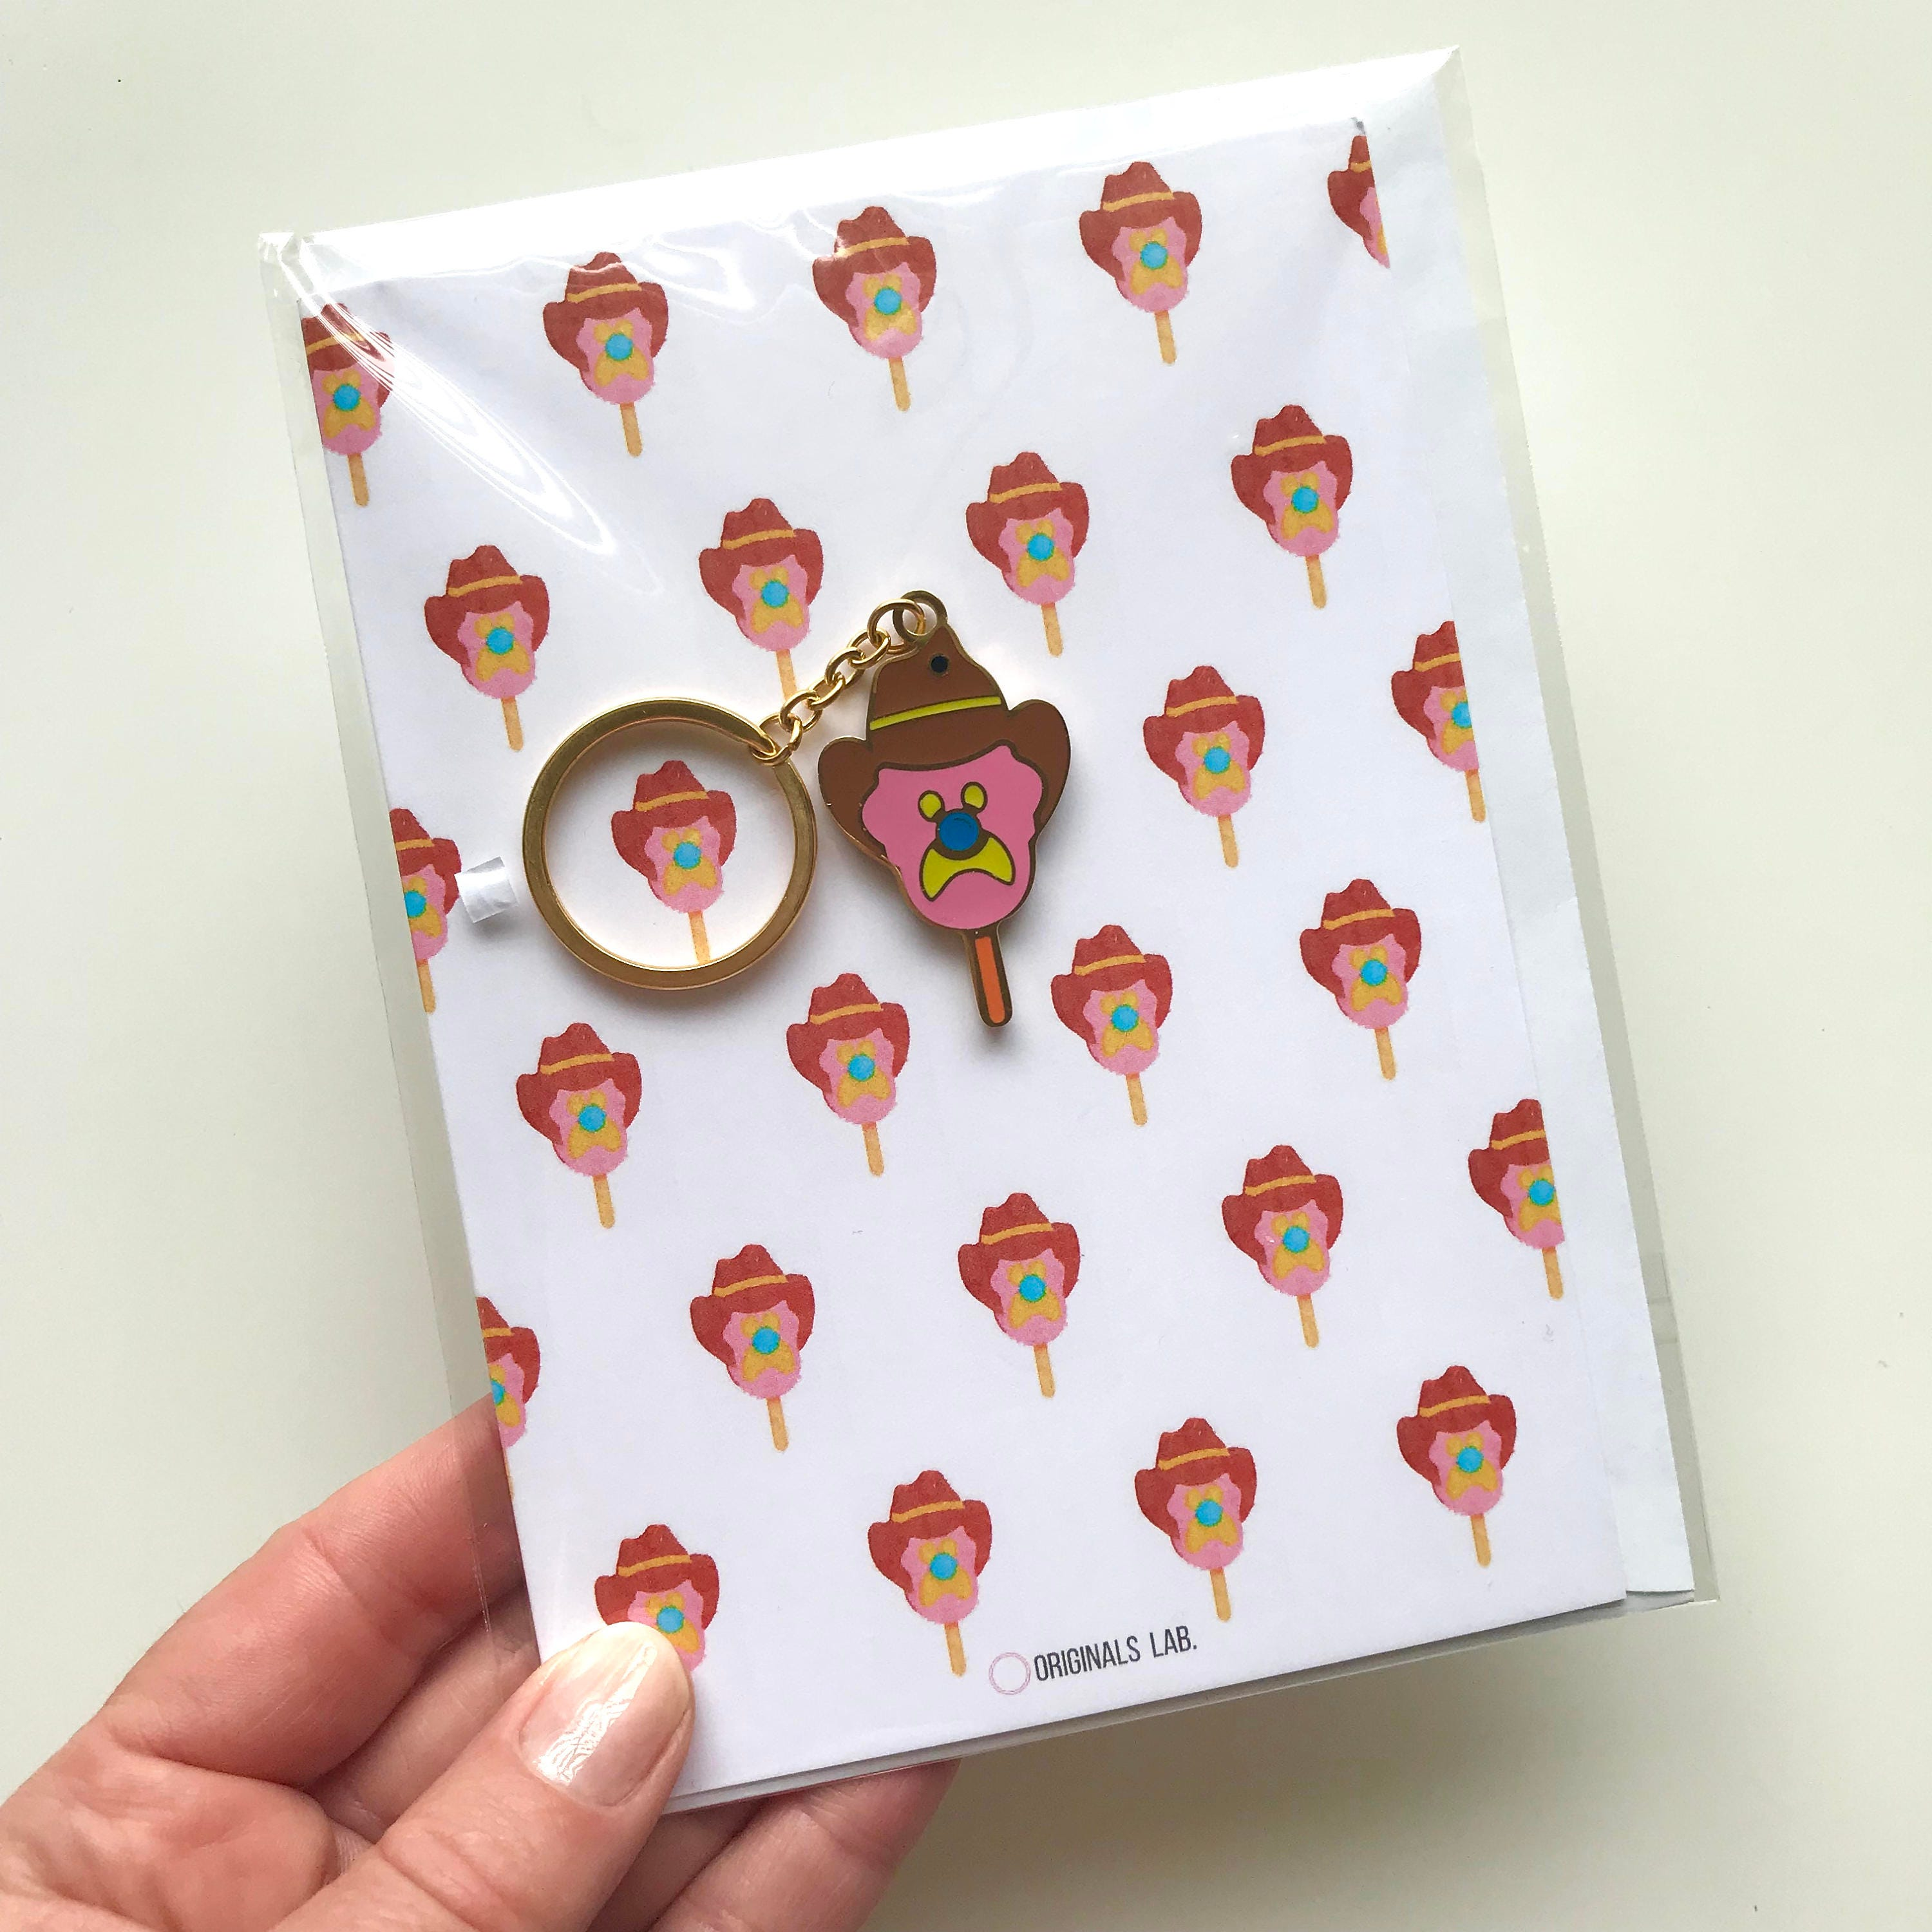 Iconic Australian Bubble O Bill Greeting Card And Keyring Plated